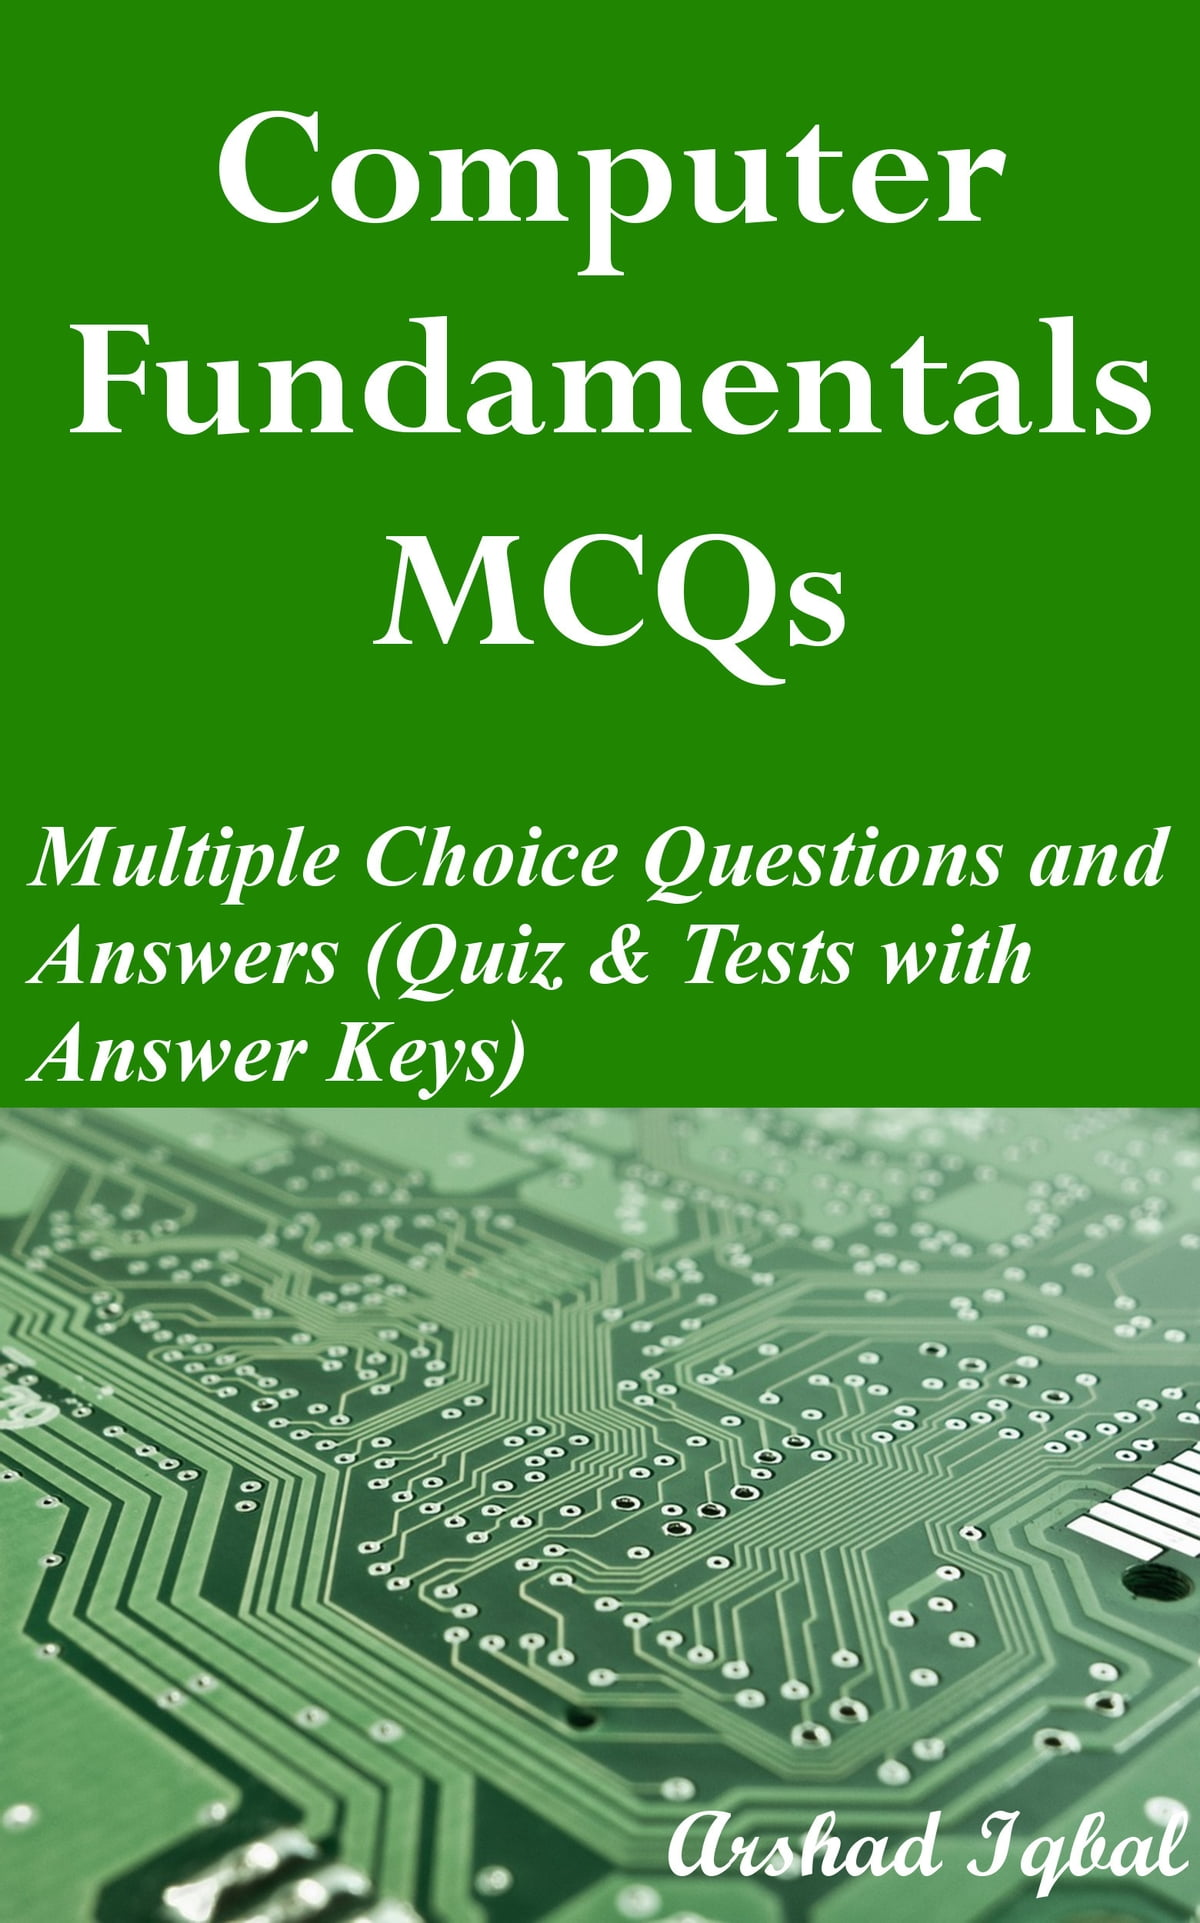 Computer Fundamentals MCQs: Multiple Choice Questions and Answers (Quiz &  Tests with Answer Keys) eBook by Arshad Iqbal - 9781311021564 | Rakuten Kobo